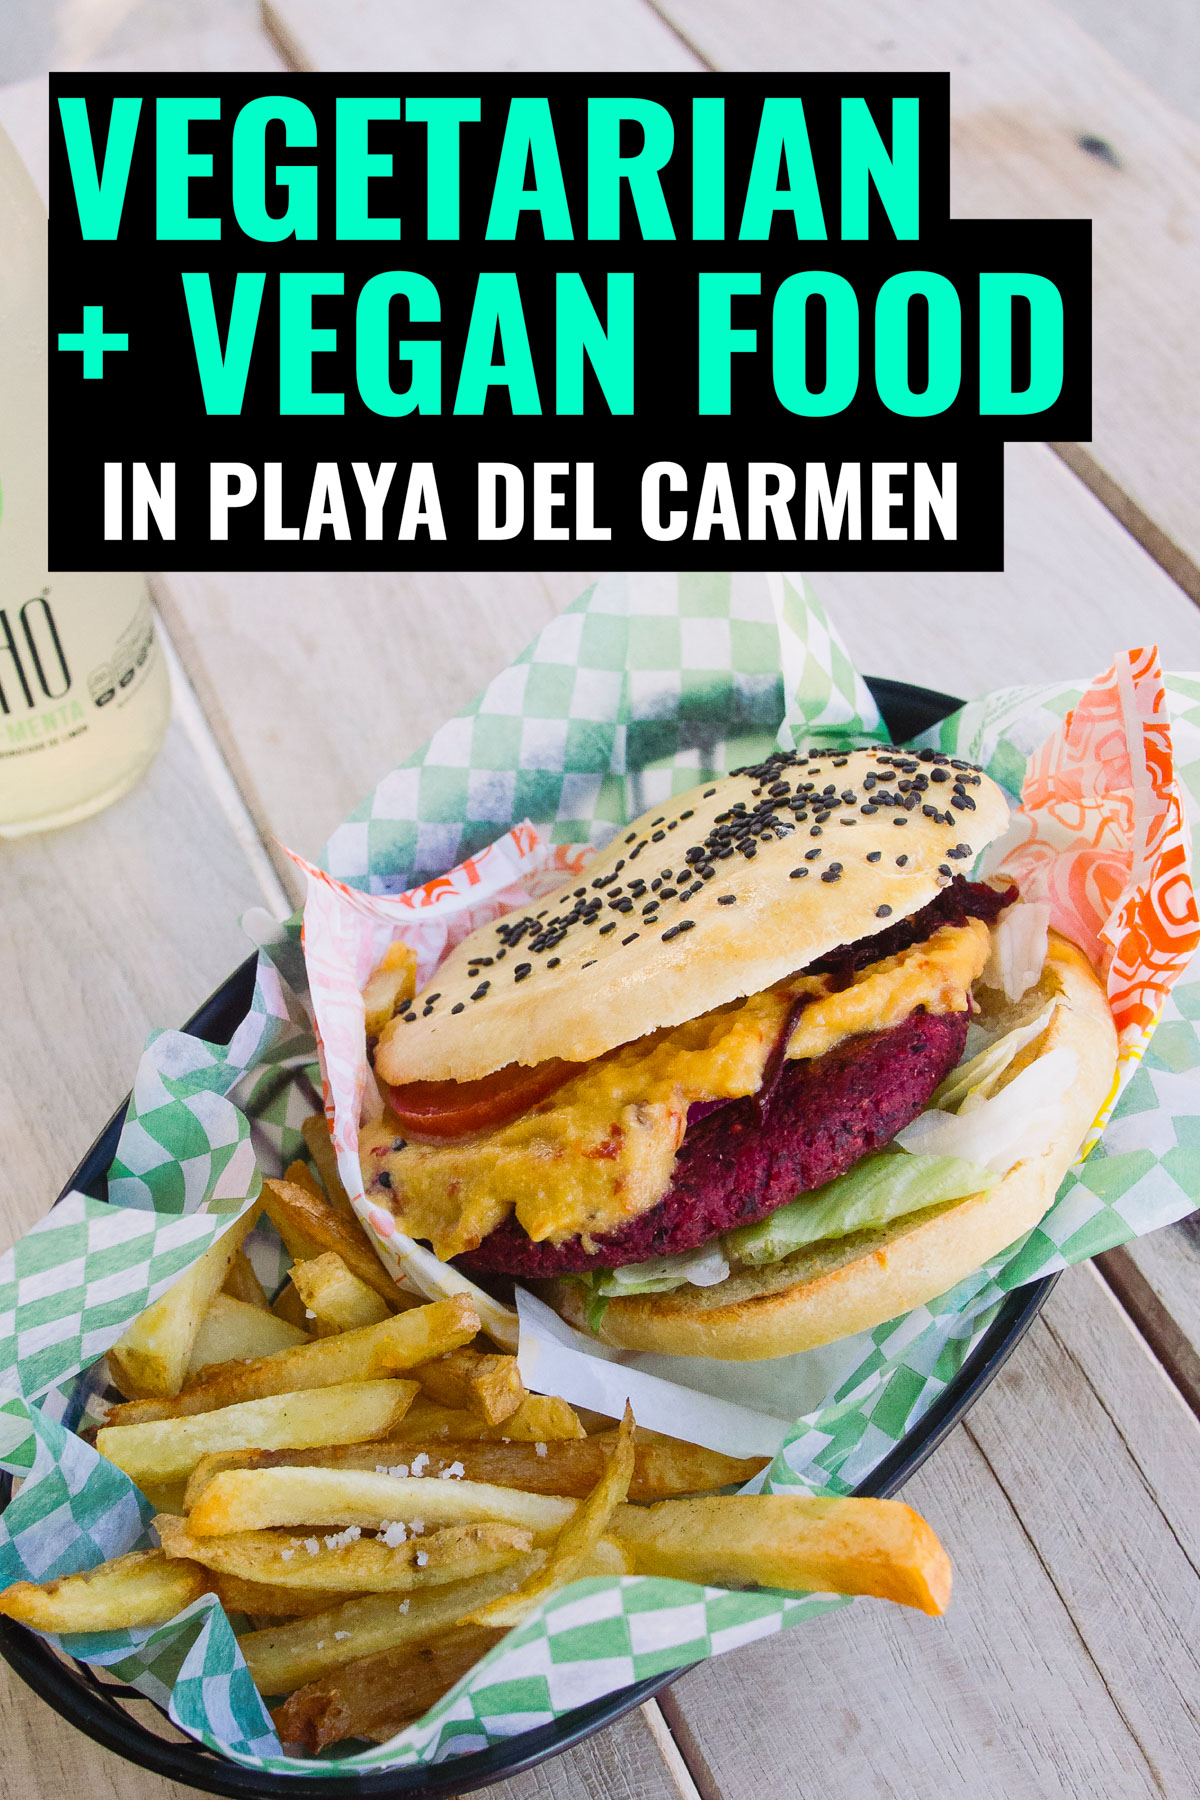 Vegetarian Playa del Carmen, don't miss the best meatless restaurants in this vegetarian friendly city in Mexico.